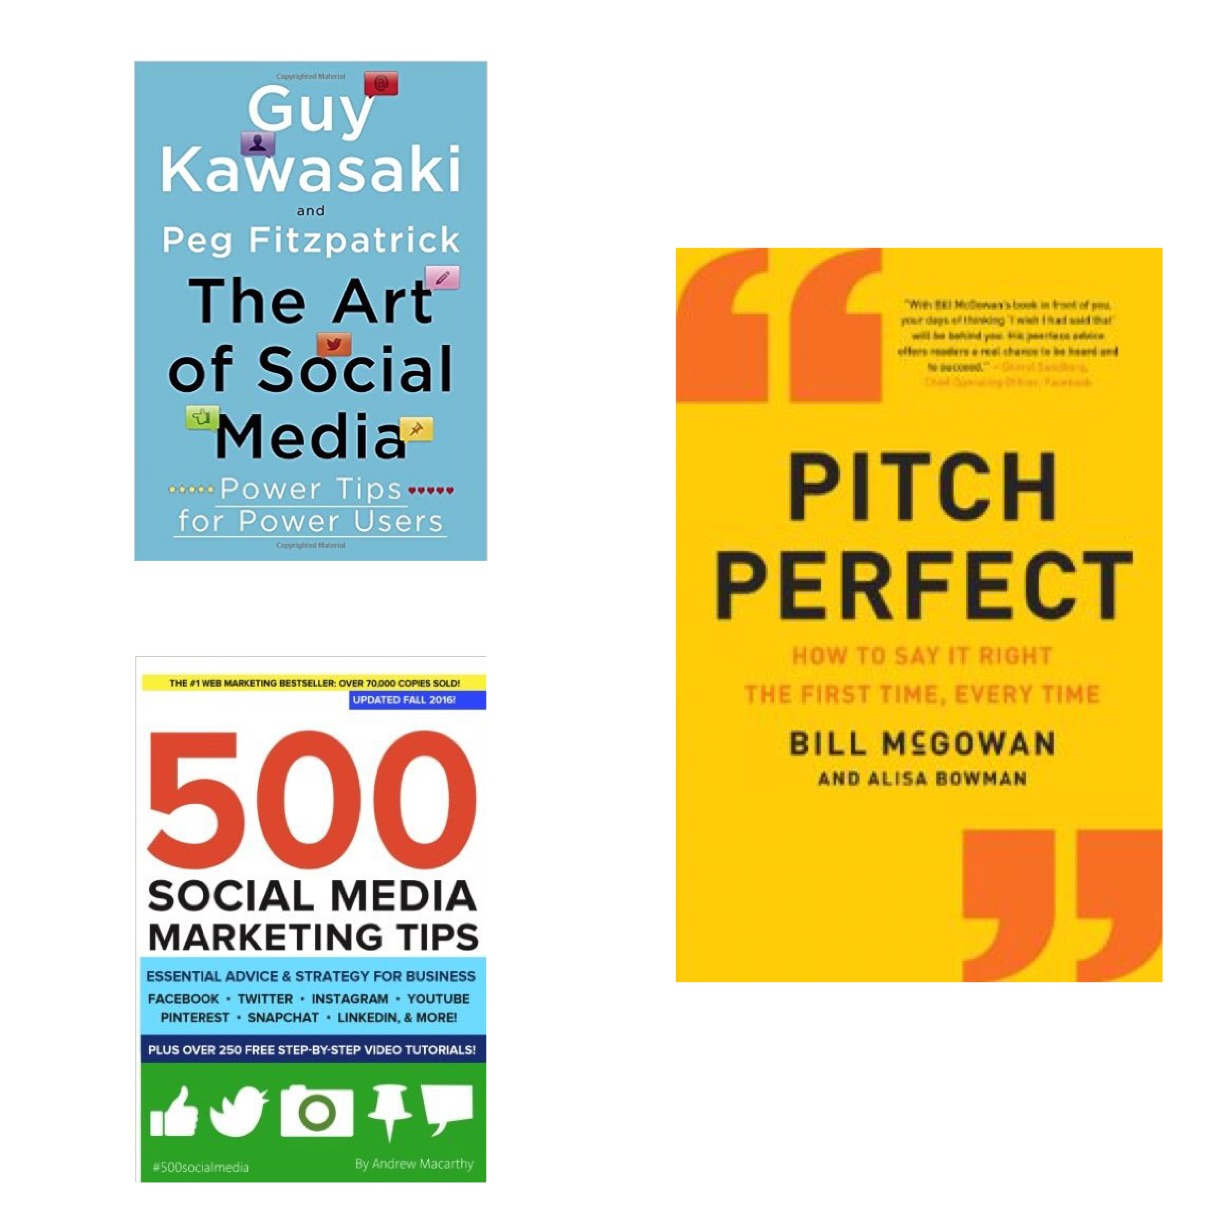 3 Great Books That Master PR, Marketing And Persuasion